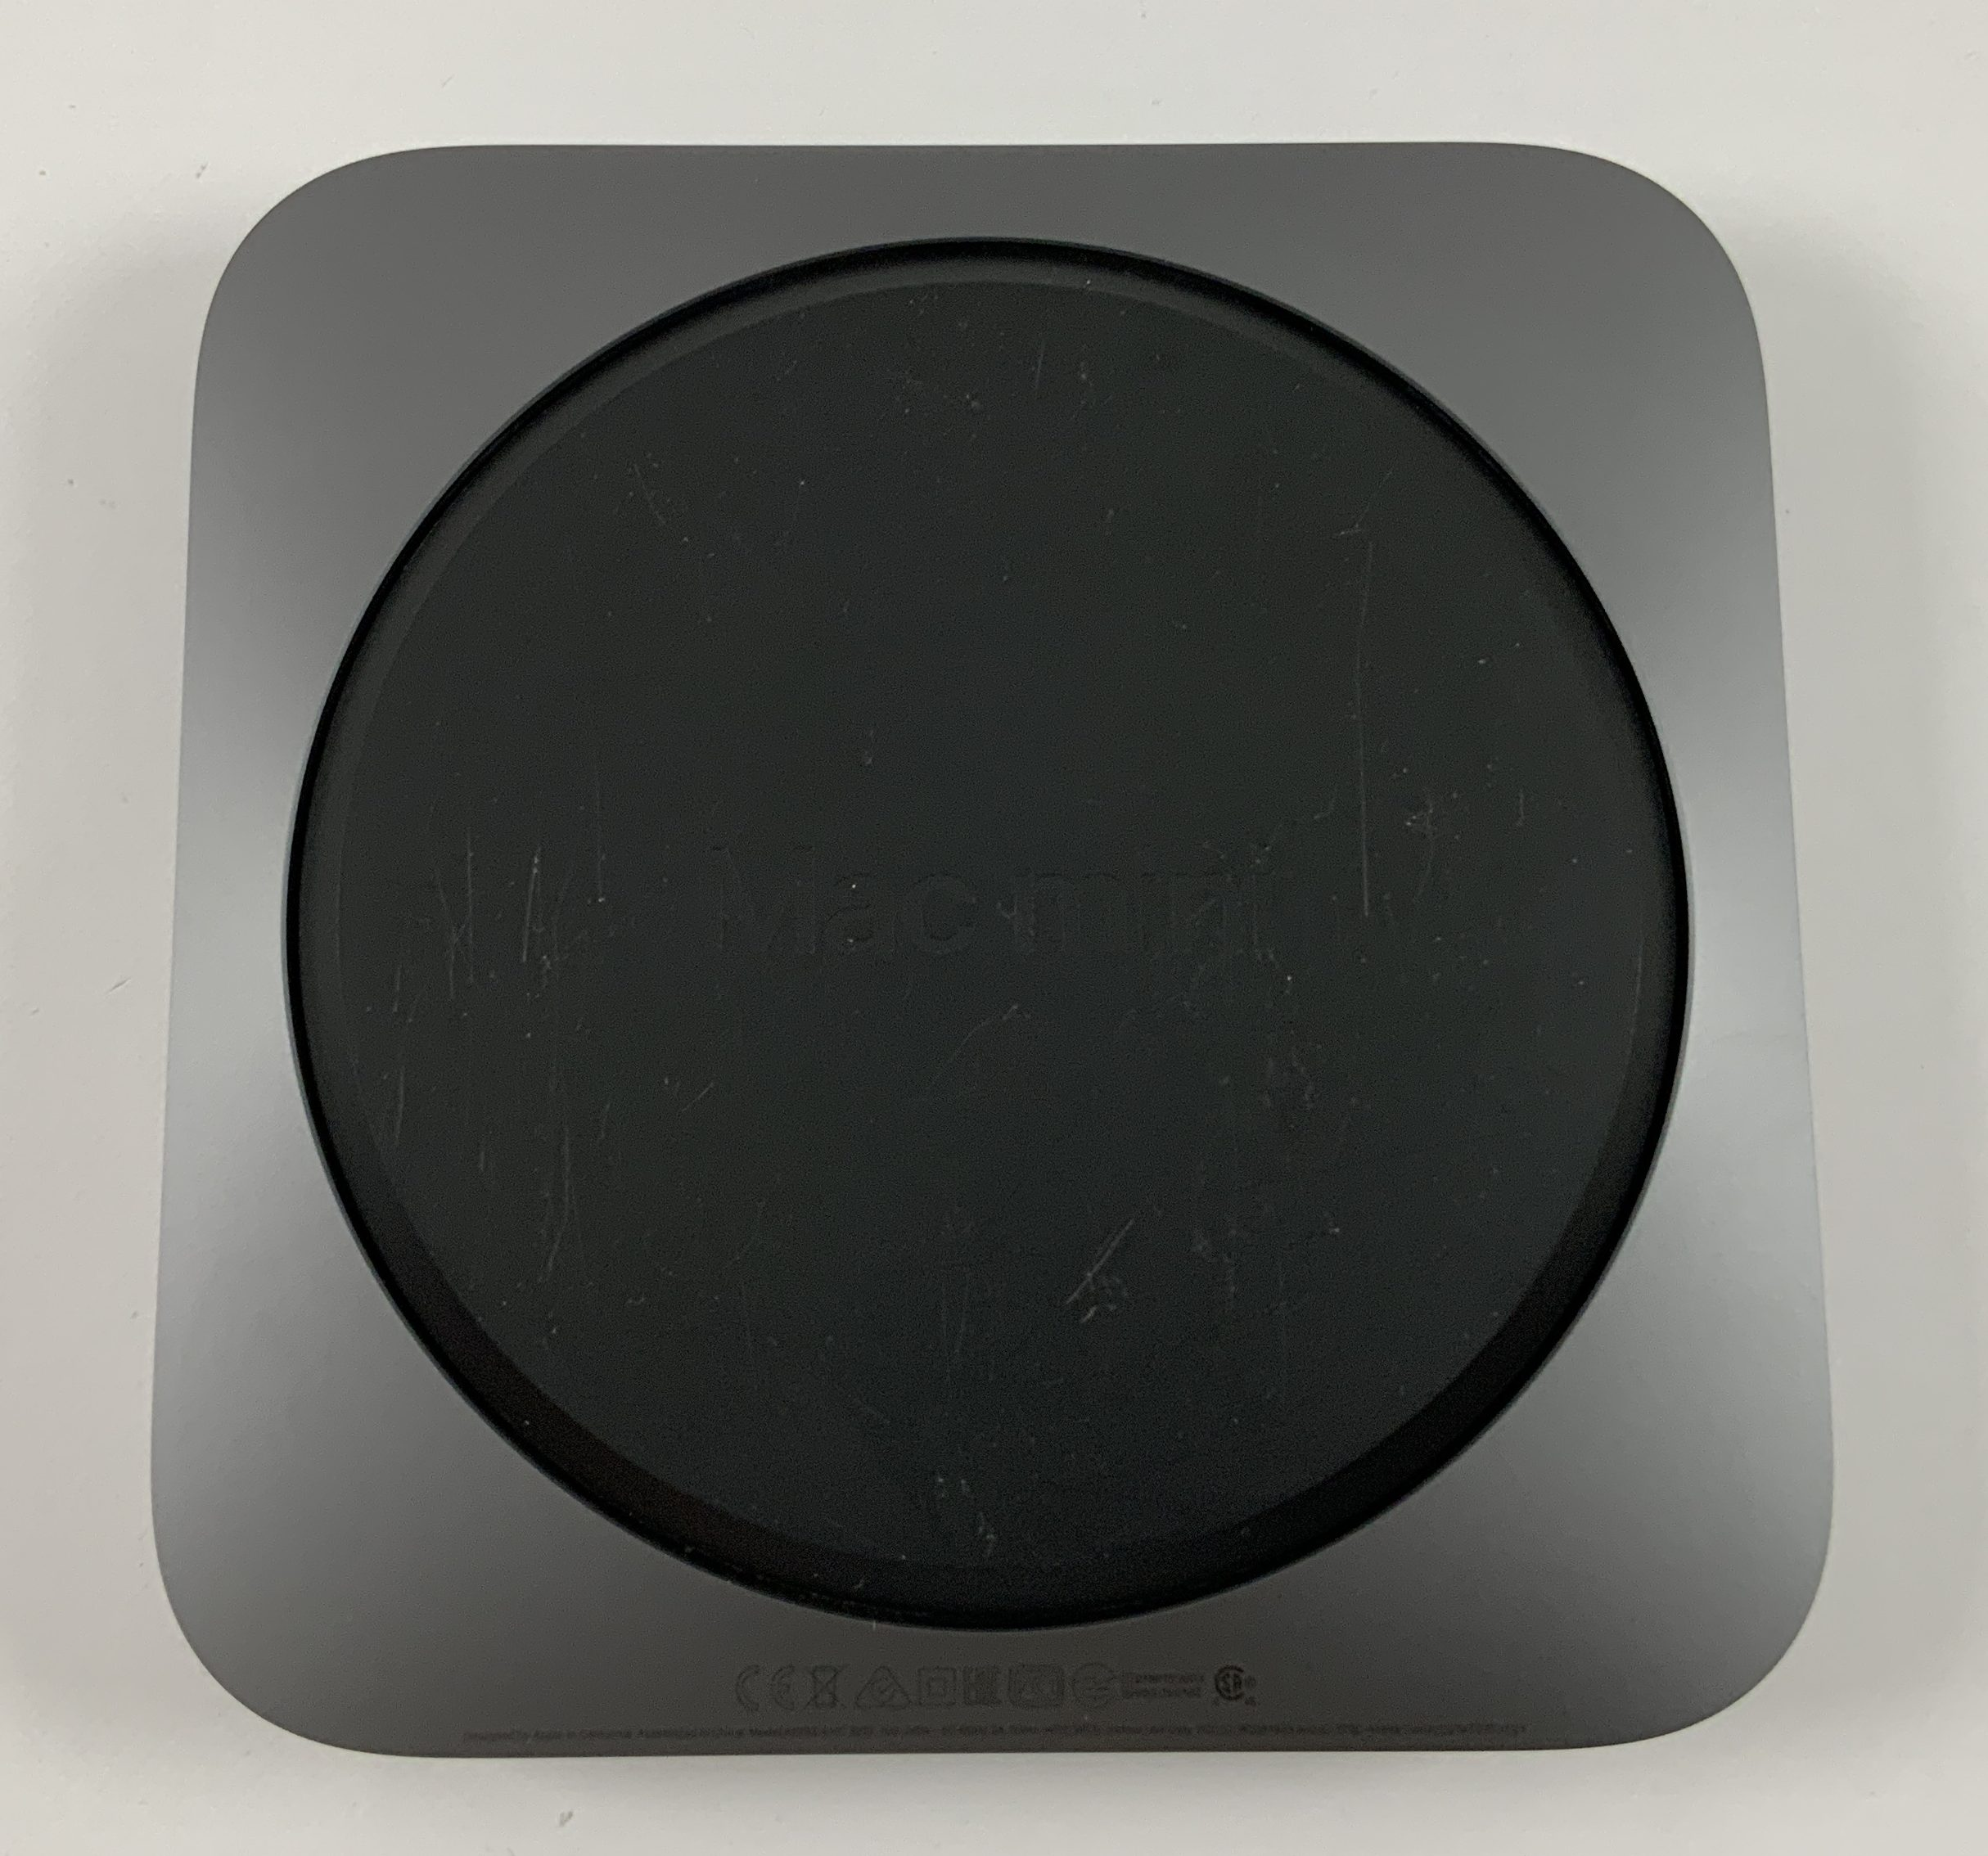 Mac Mini Late 2018 (Intel 6-Core i5 3.0 GHz 8 GB RAM 256 GB SSD), Intel 6-Core i5 3.0 GHz, 8 GB RAM, 256 GB SSD, bild 4